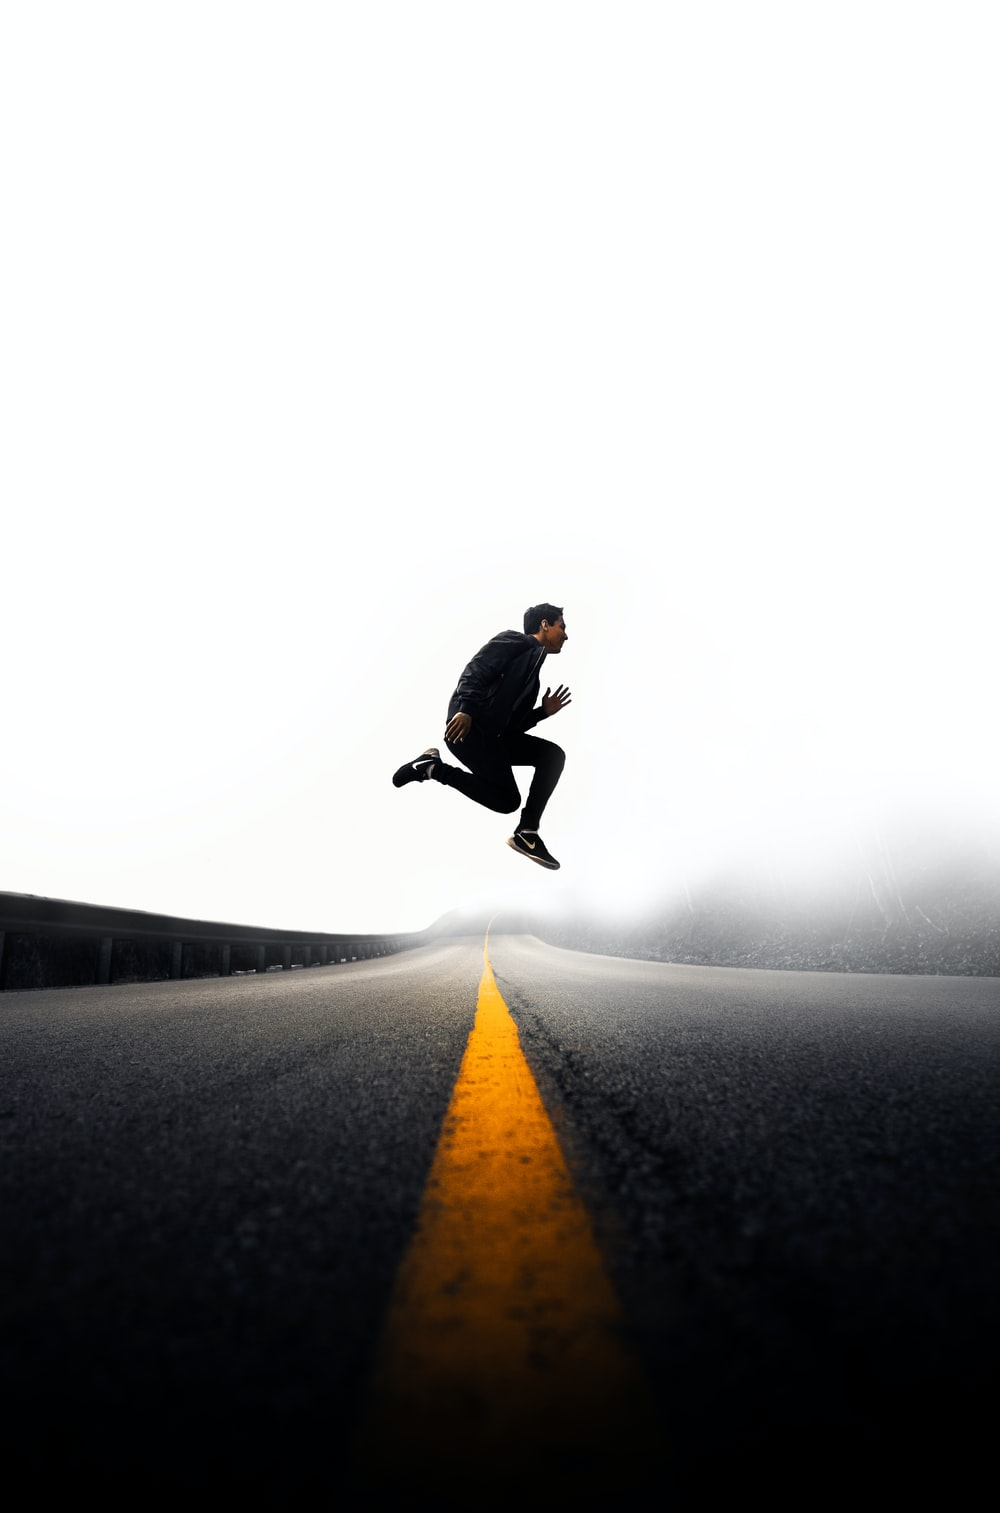 man jumping above gray and yellow concrete road at daytime